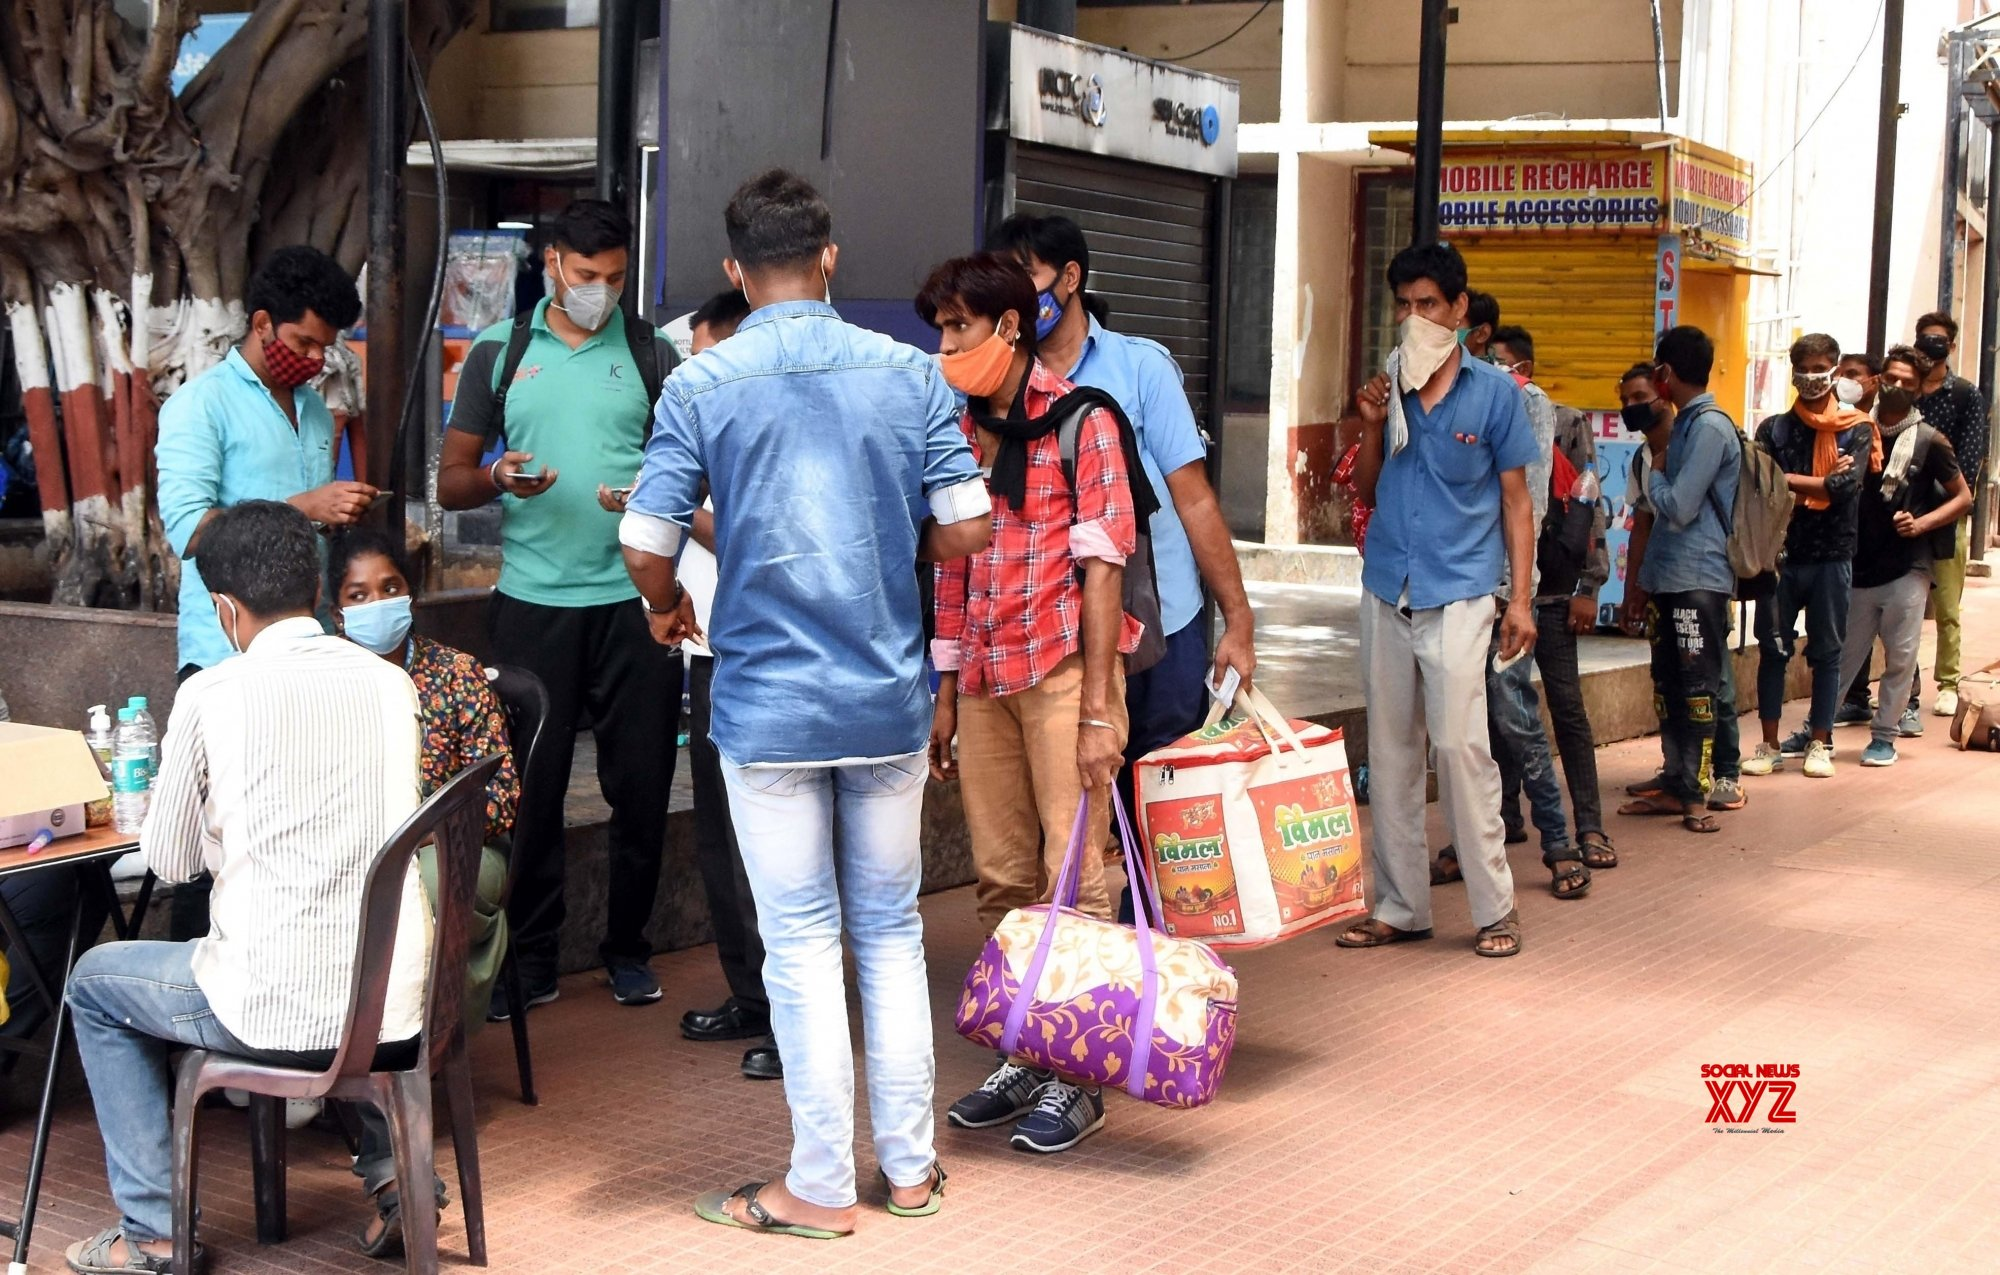 Bengaluru : Health worker collects swab samples for COVID - 19 tests at City Railway station, amid surge in coronavirus cases in Bengaluru. #Gallery